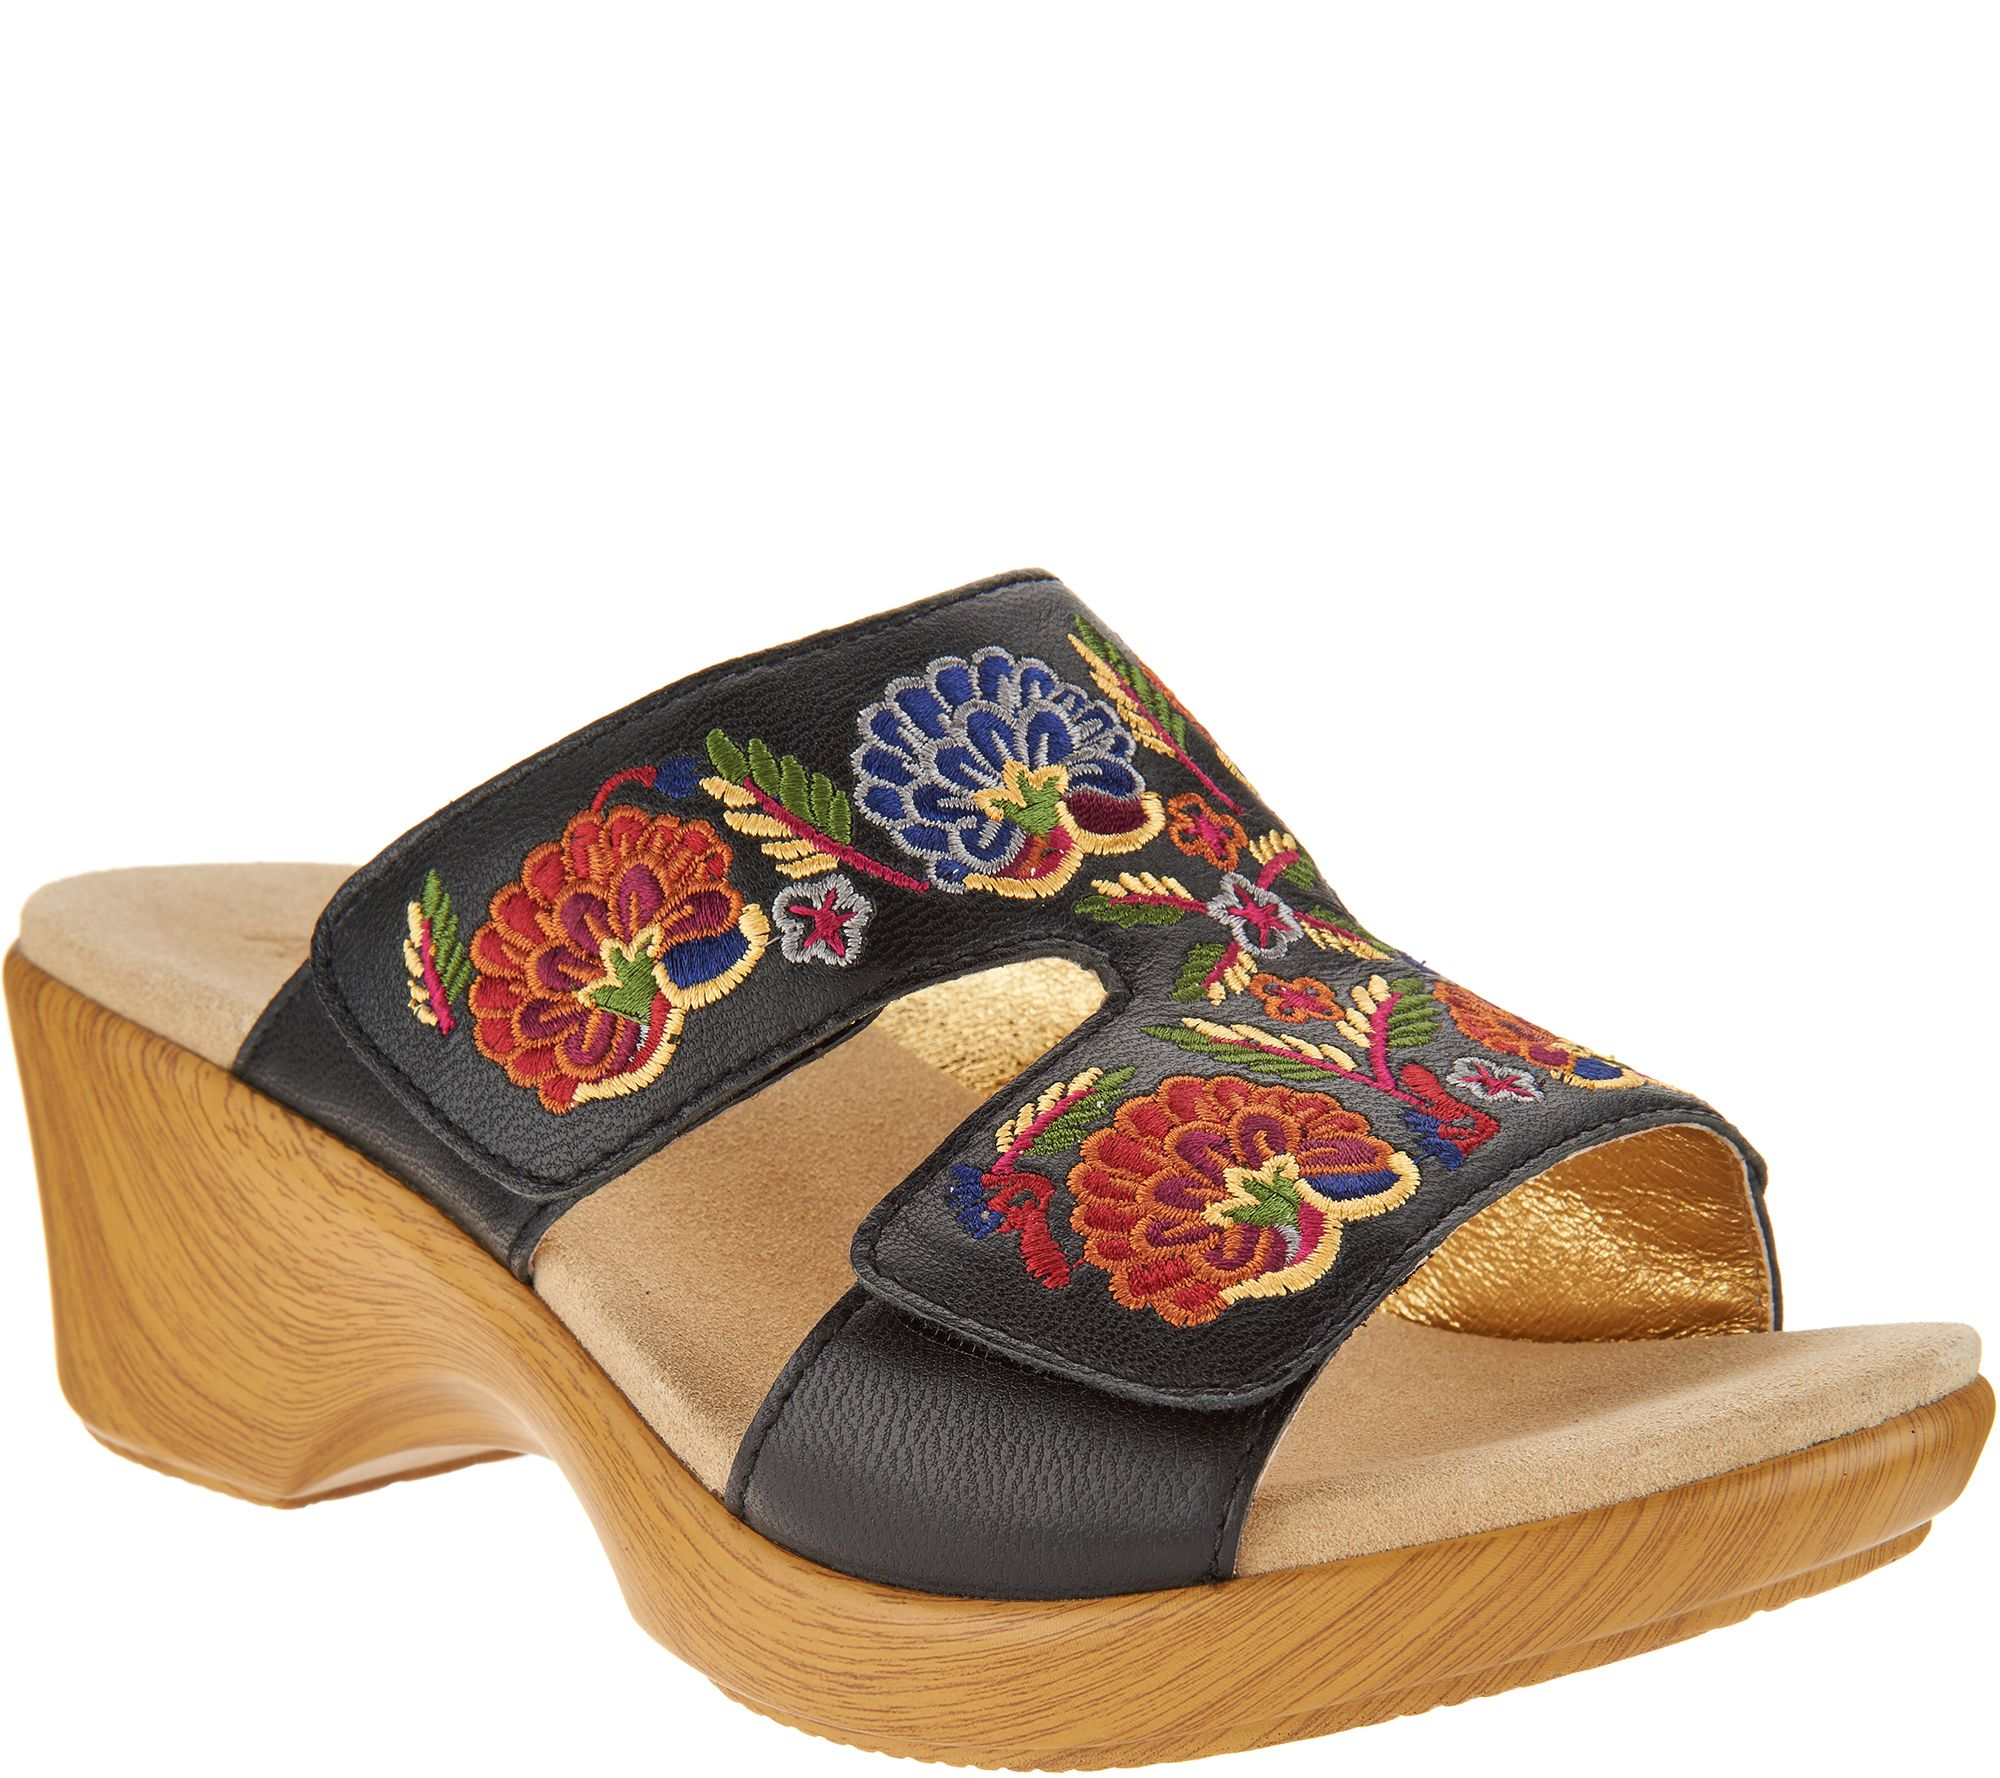 58fbf96a47b4 Alegria Embroidered Leather Slip-on Wedge Sandals - Linn - Page 1 — QVC.com